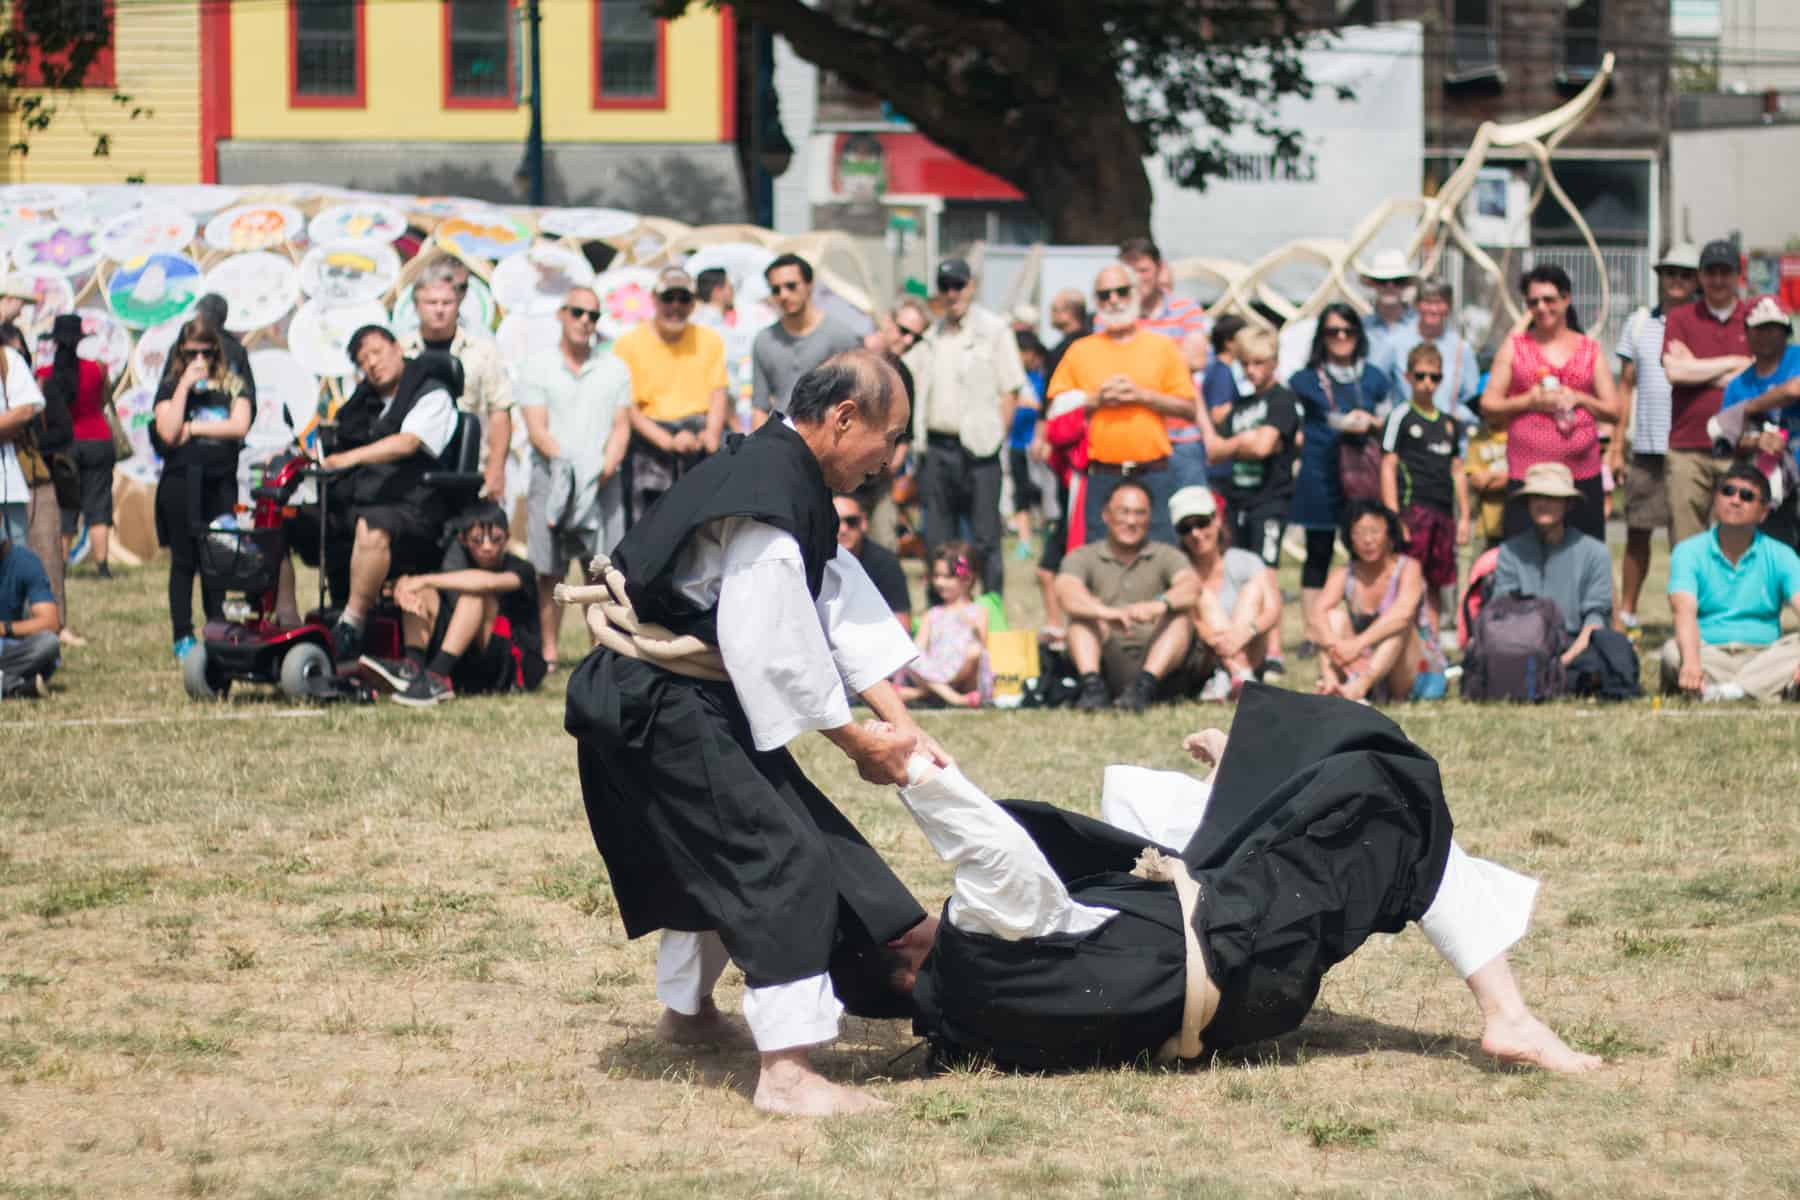 Photo of Shorinji Kempo at the 2016 Powell Street Festival by Kritstin Fuchihara